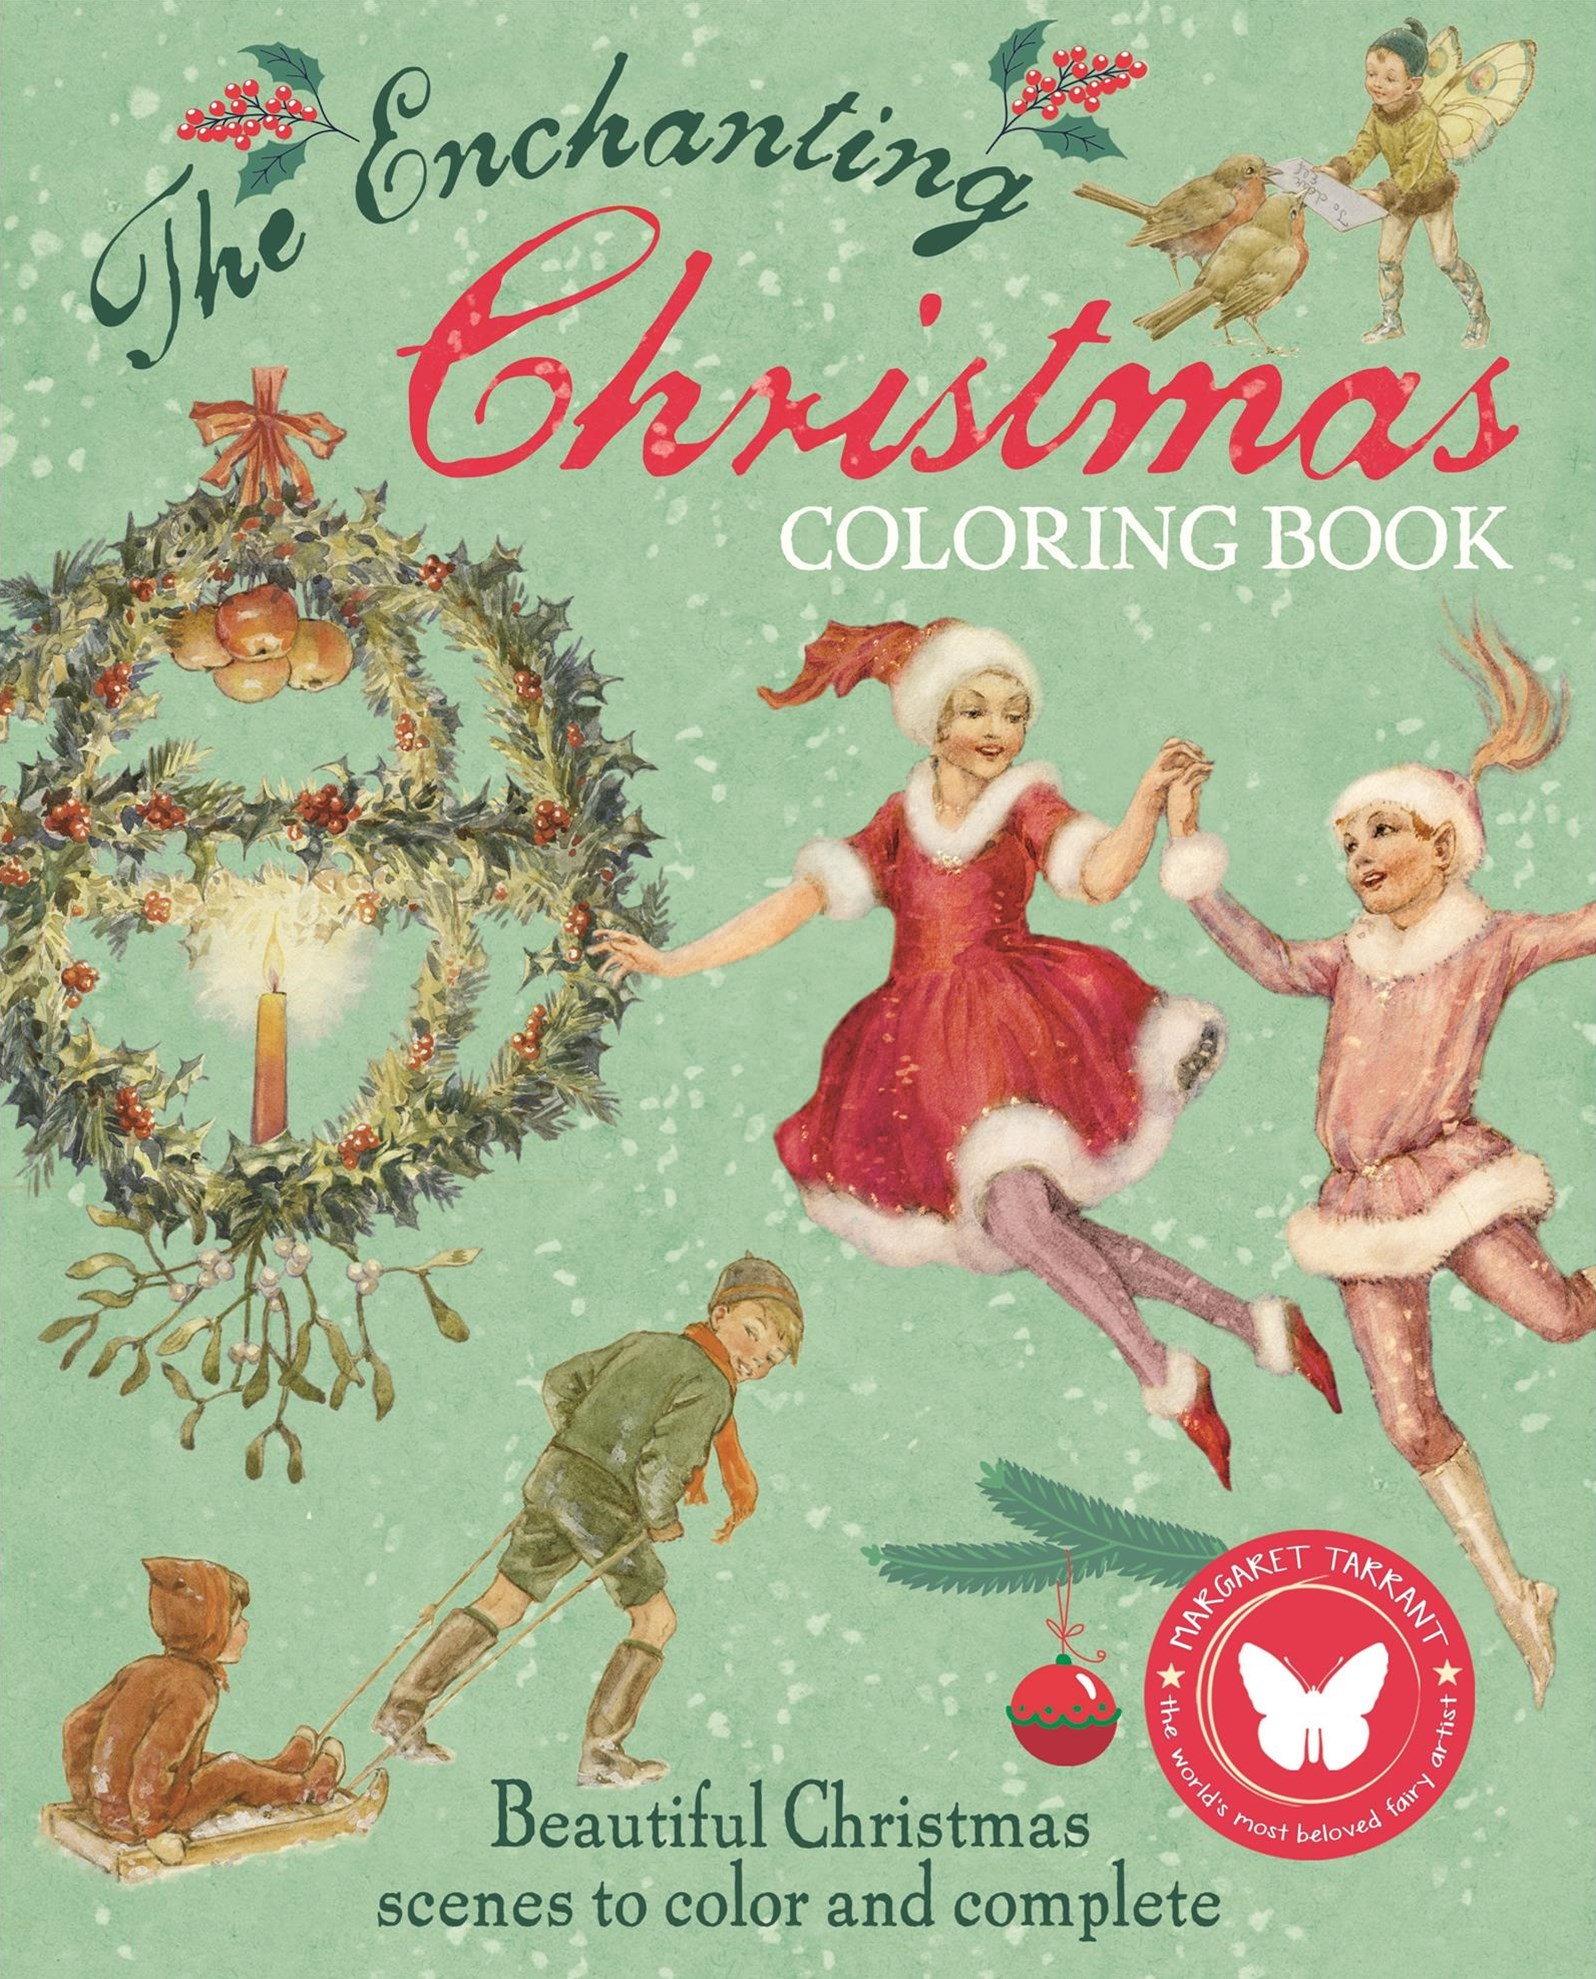 The Enchanting Christmas Coloring Book